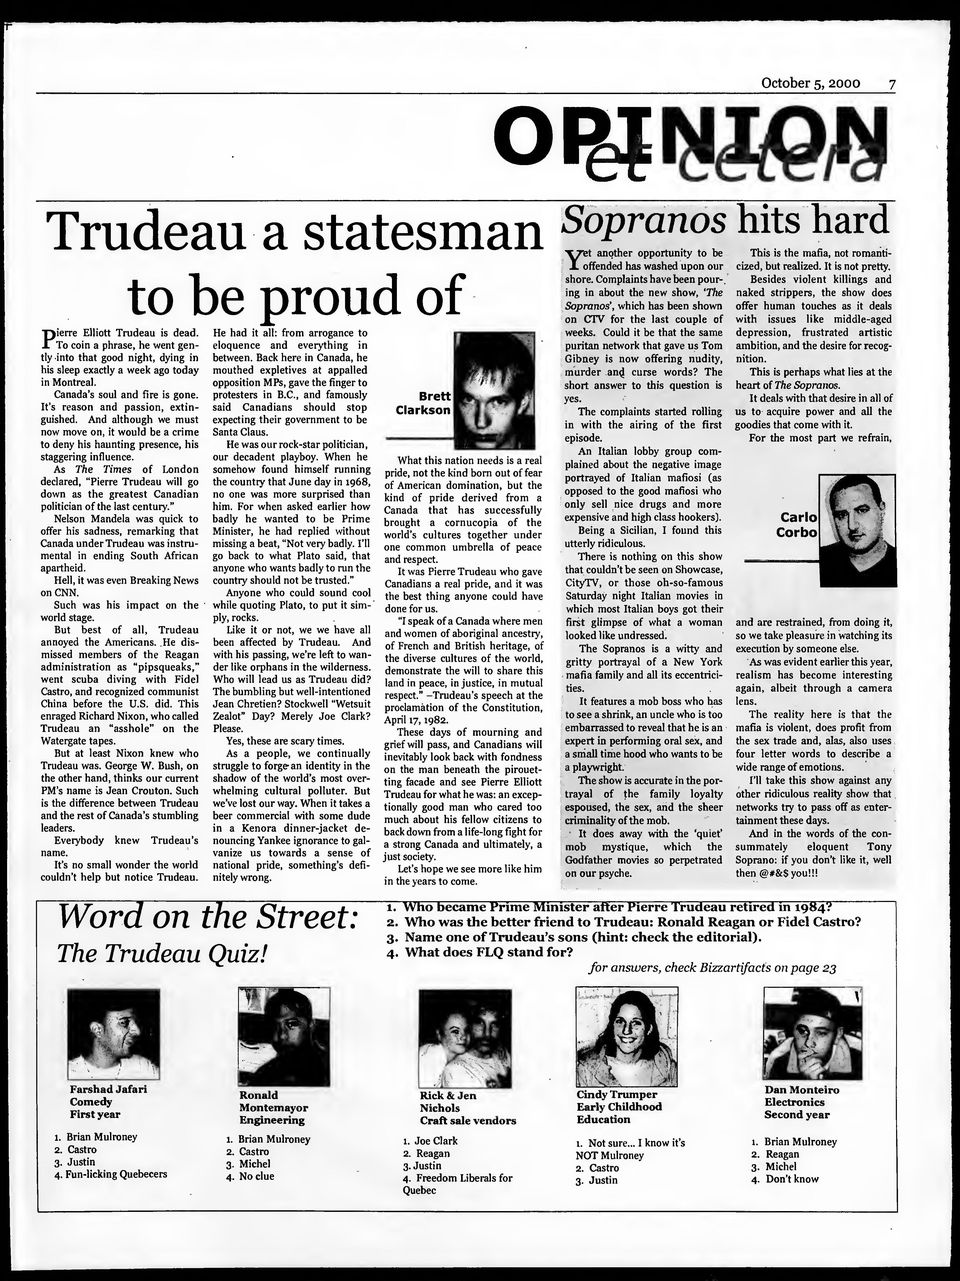 "As The Times of London declared, ""Pierre Trudeau will go down as the greatest Canadian politician of the last century."